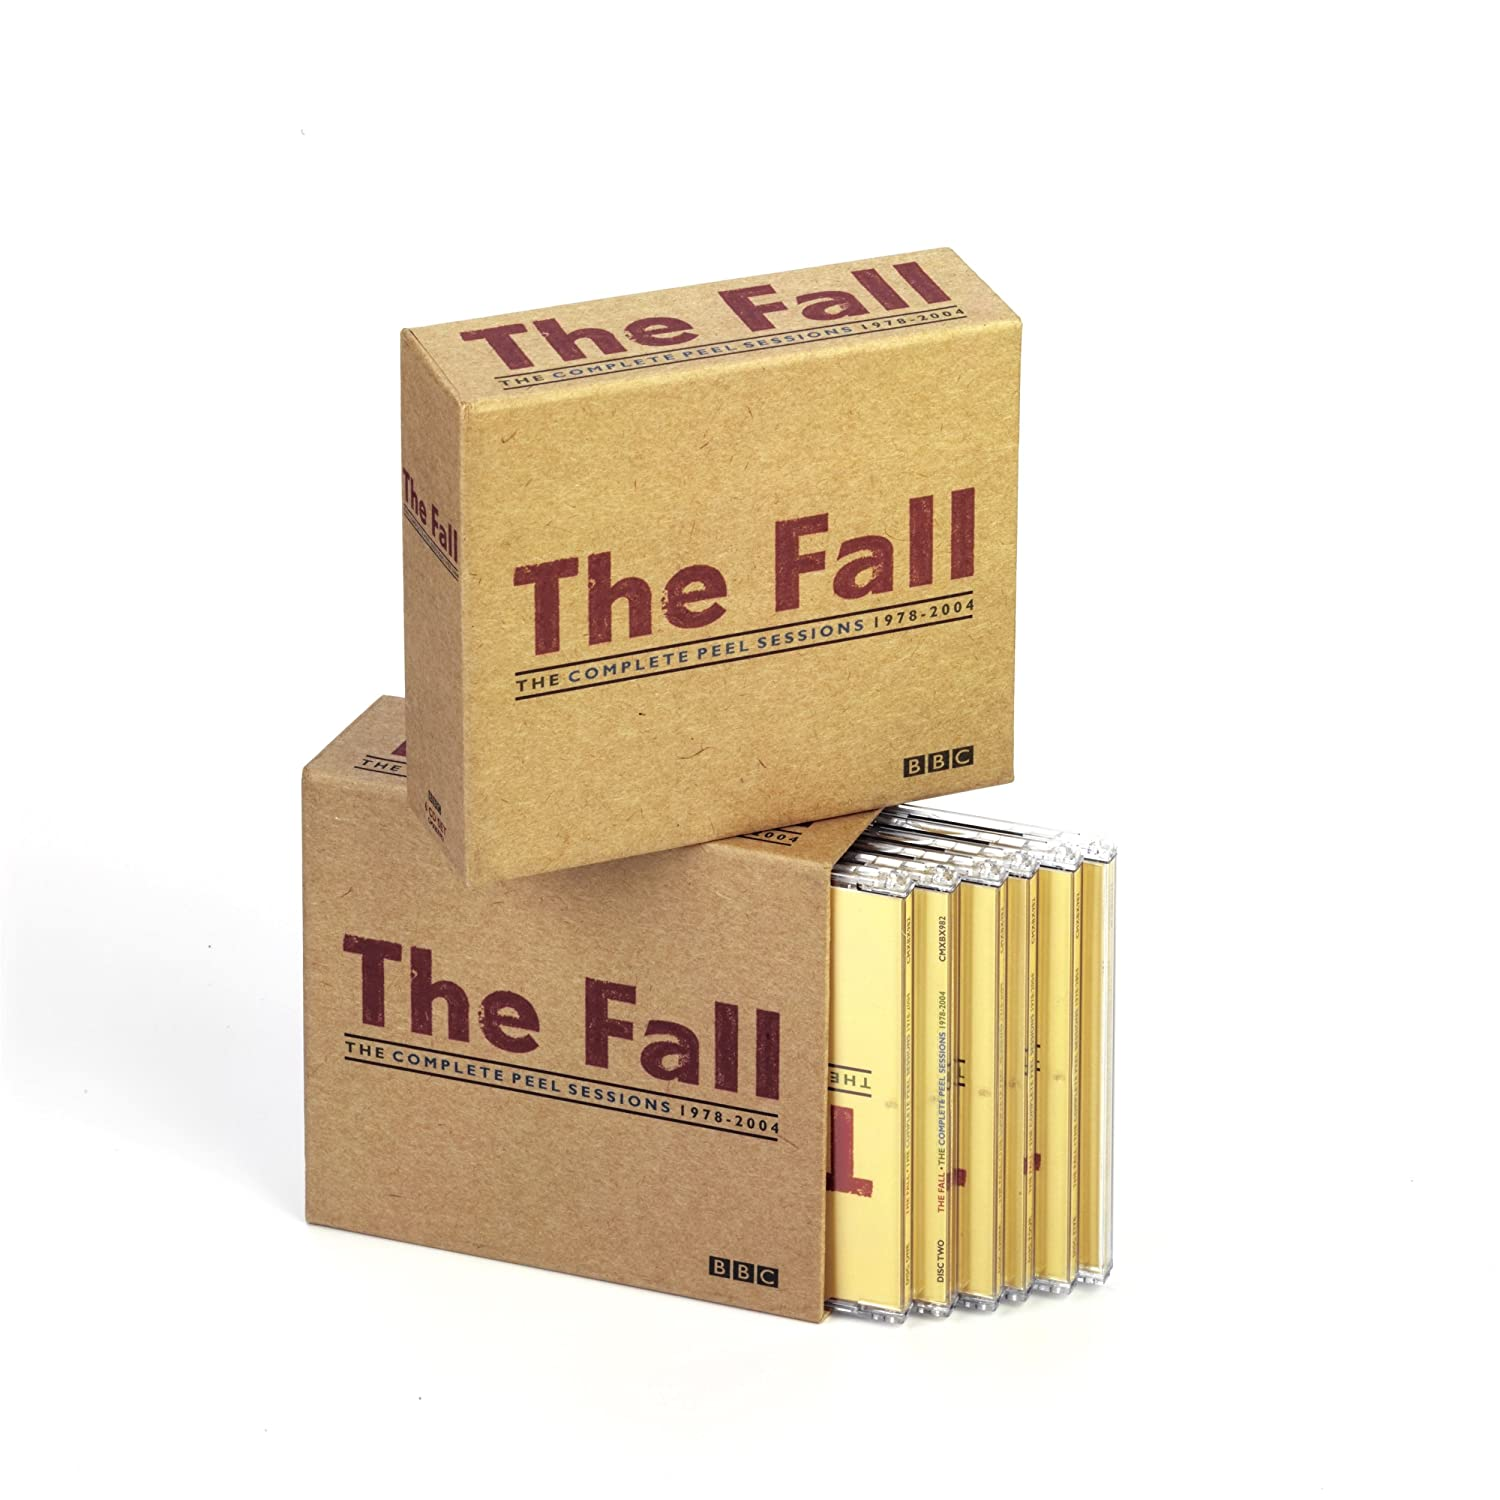 Image result for the fall peel sessions box set booklet